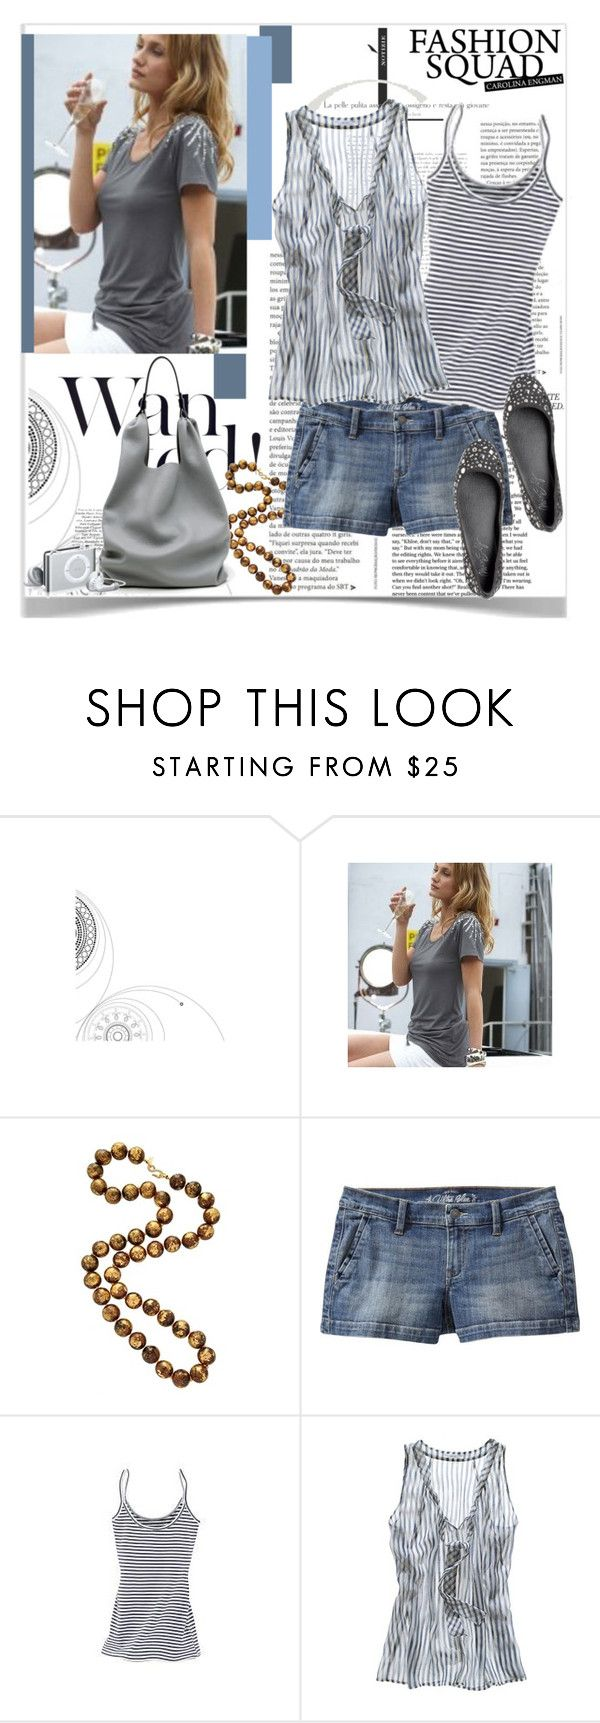 """""""mood for walk"""" by anukk ❤ liked on Polyvore featuring Sunichi, The Cambridge Satchel Company, Kenneth Jay Lane, Old Navy, Makena Lei, Madewell, Jil Sander, Miss Sixty, flatform shoes and boyfriend shorts"""